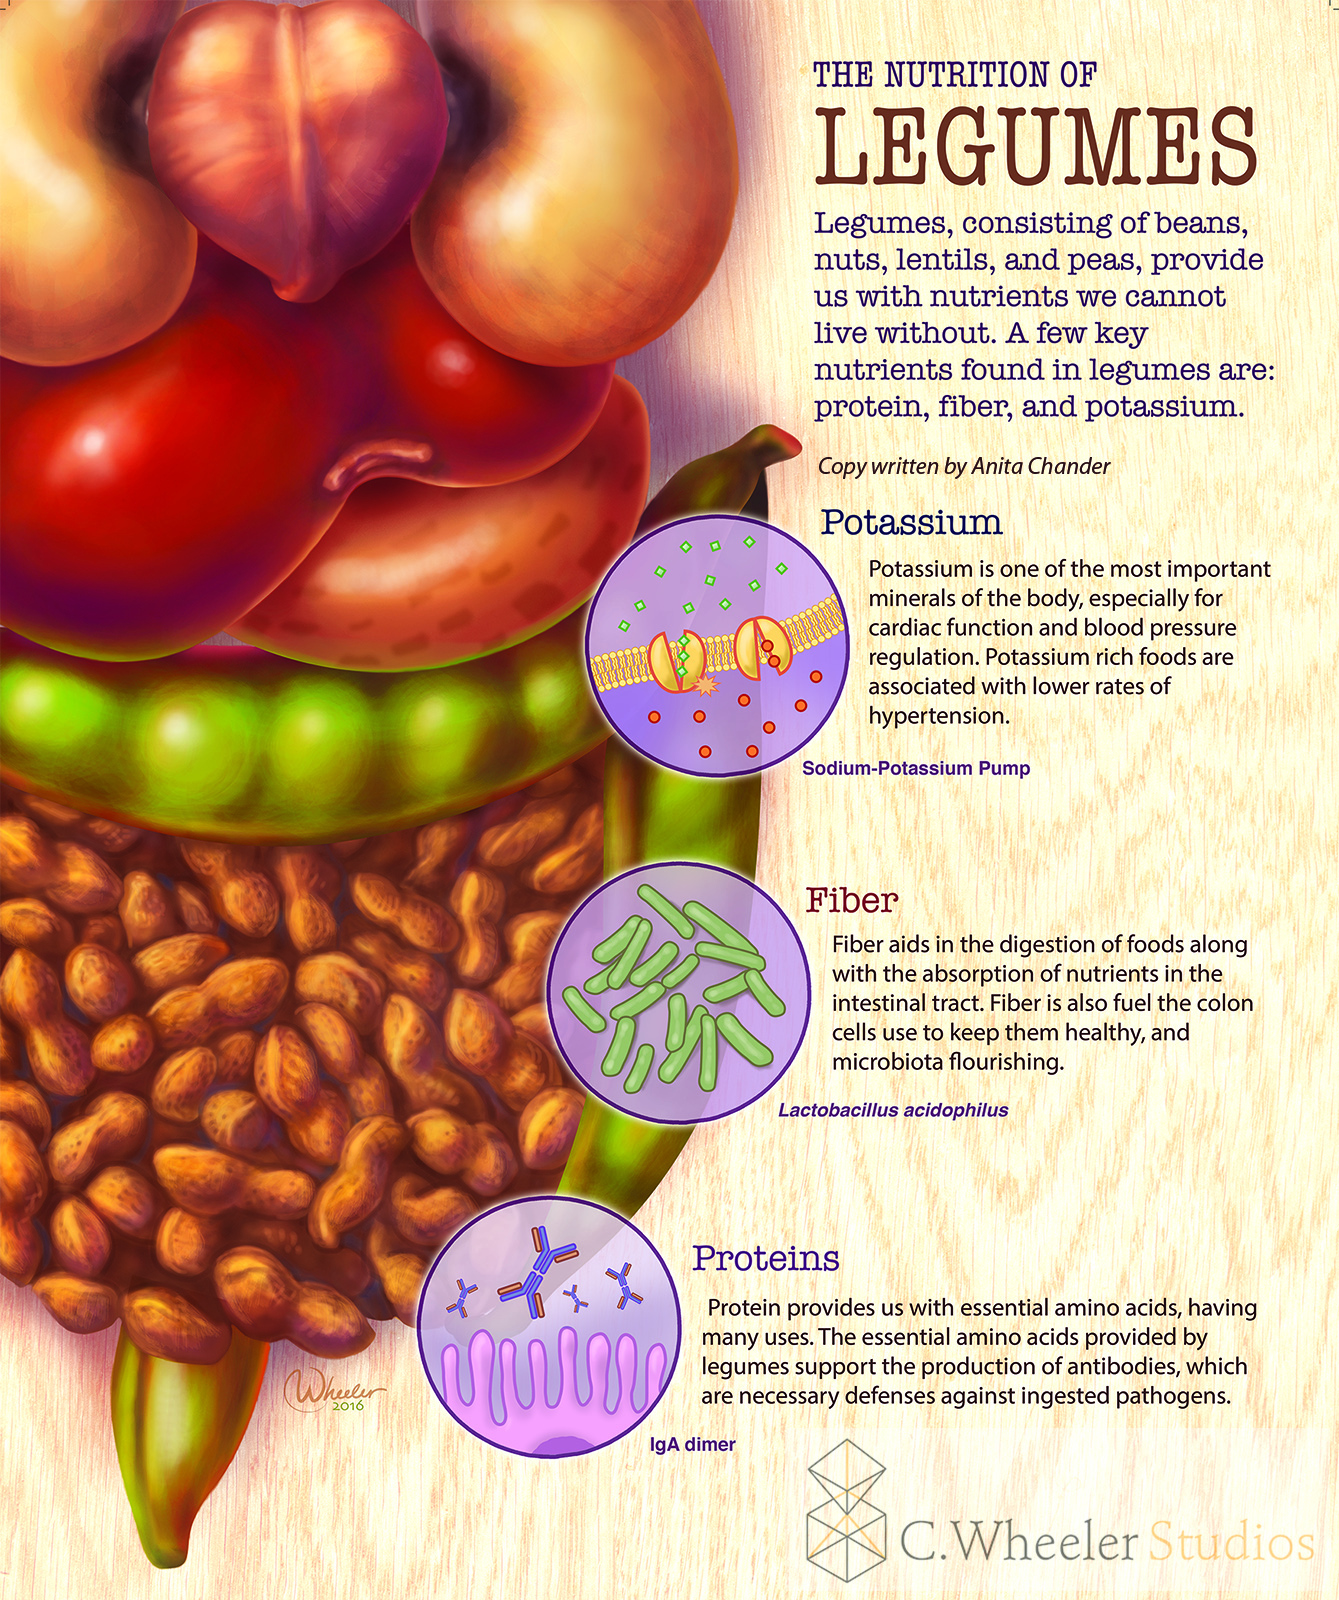 Nutrition of legumes, 2015